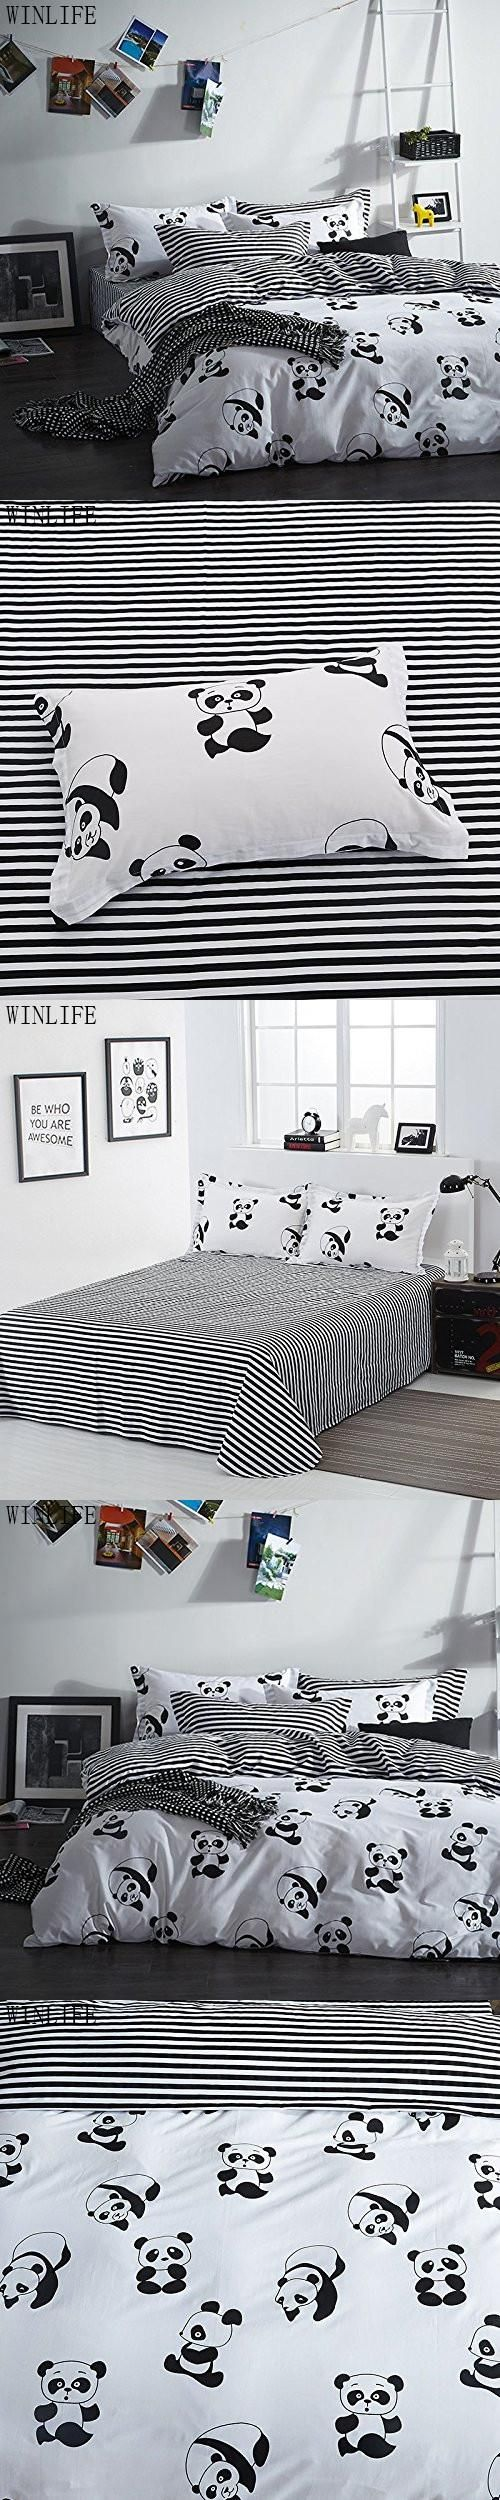 WINLIFE Black and White Duvet Cover Set 100% Cotton Black and White Panda Bedding